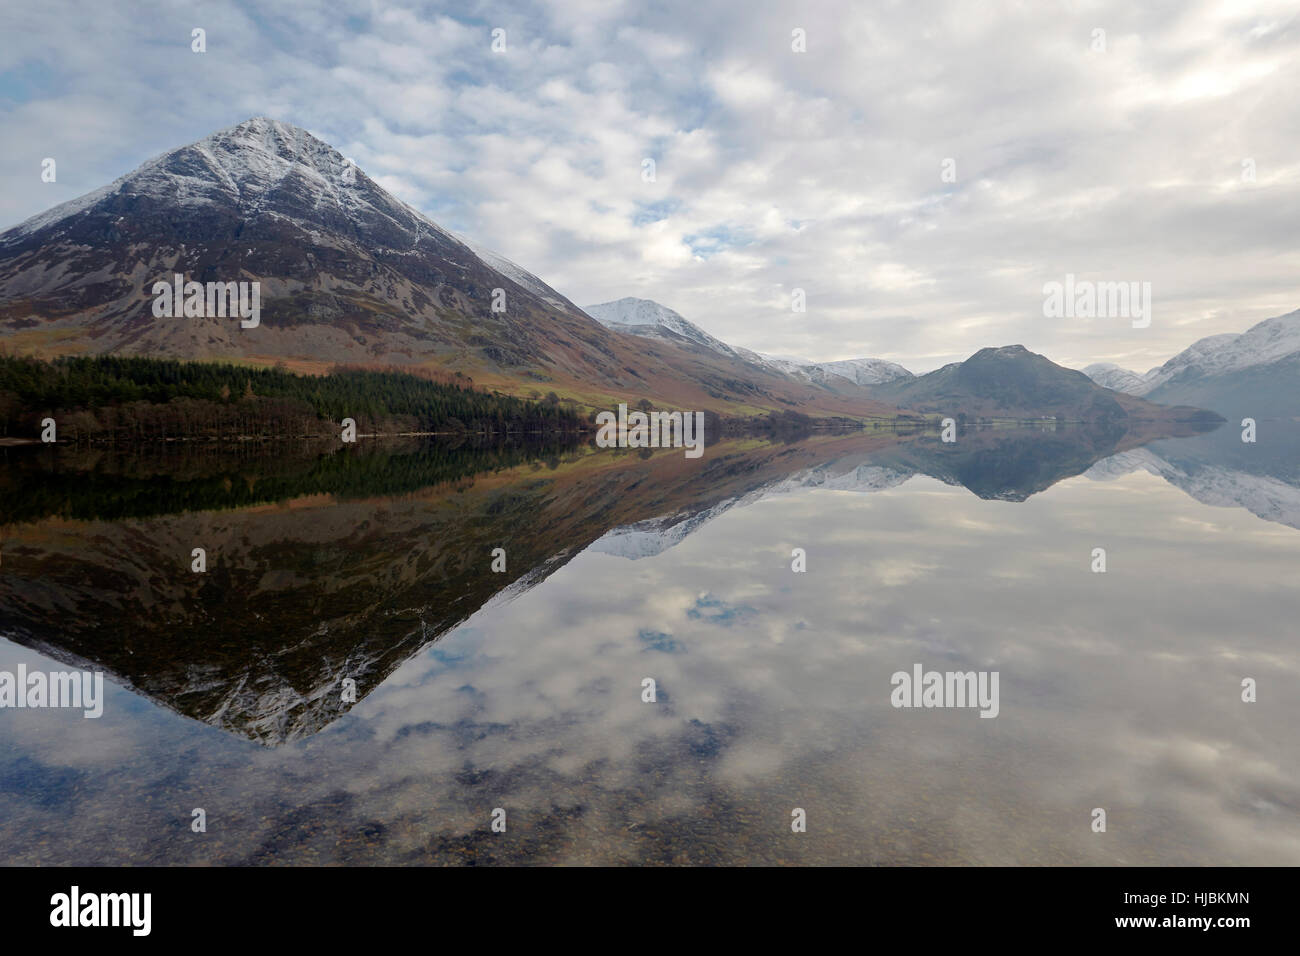 Mountains rocks and trees reflected in the calm surface of Crummock Water, Keswick, Cumbria, Lake District, England - Stock Image